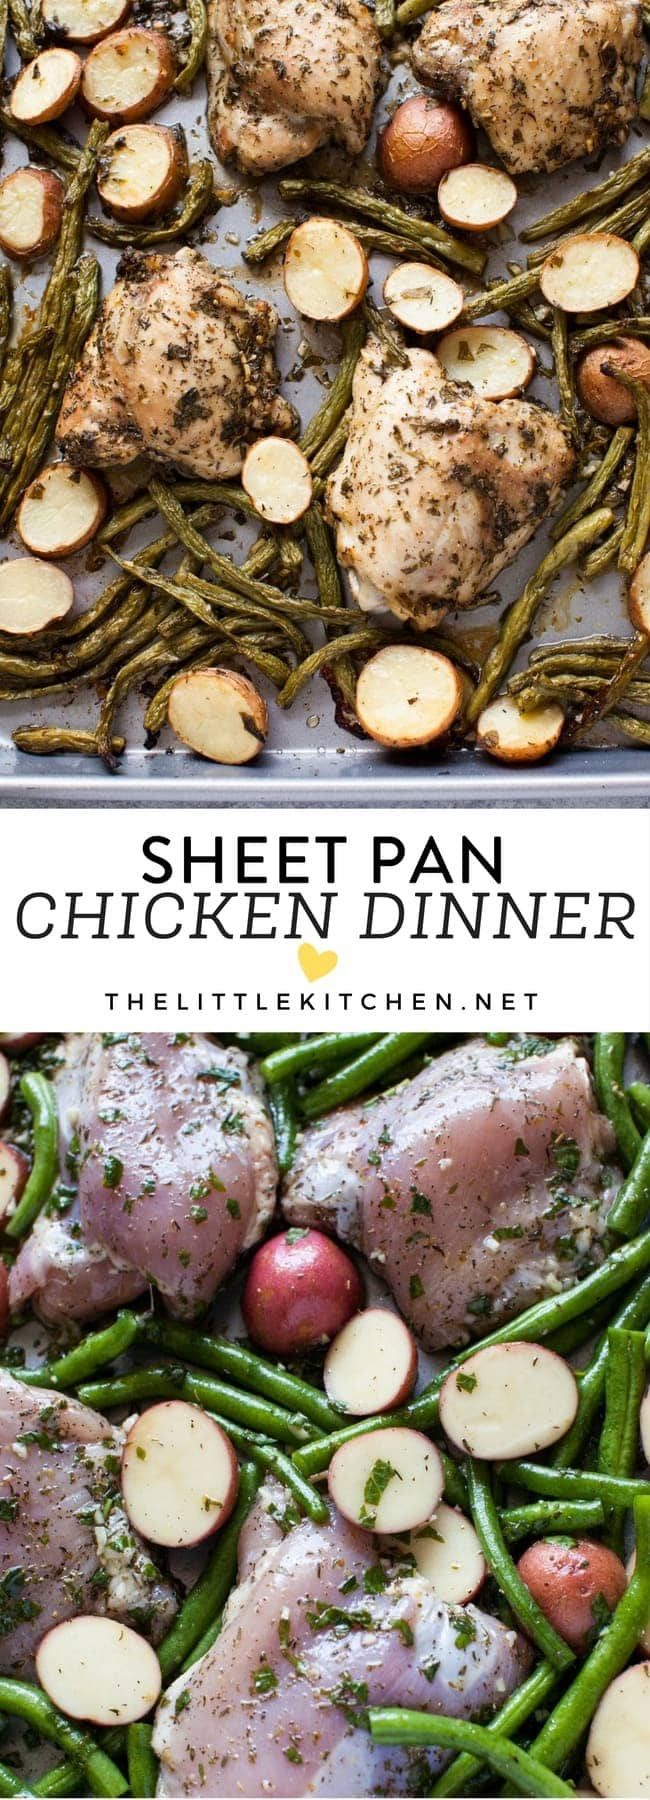 Sheet Pan Chicken Dinner from thelittlekitchen.net